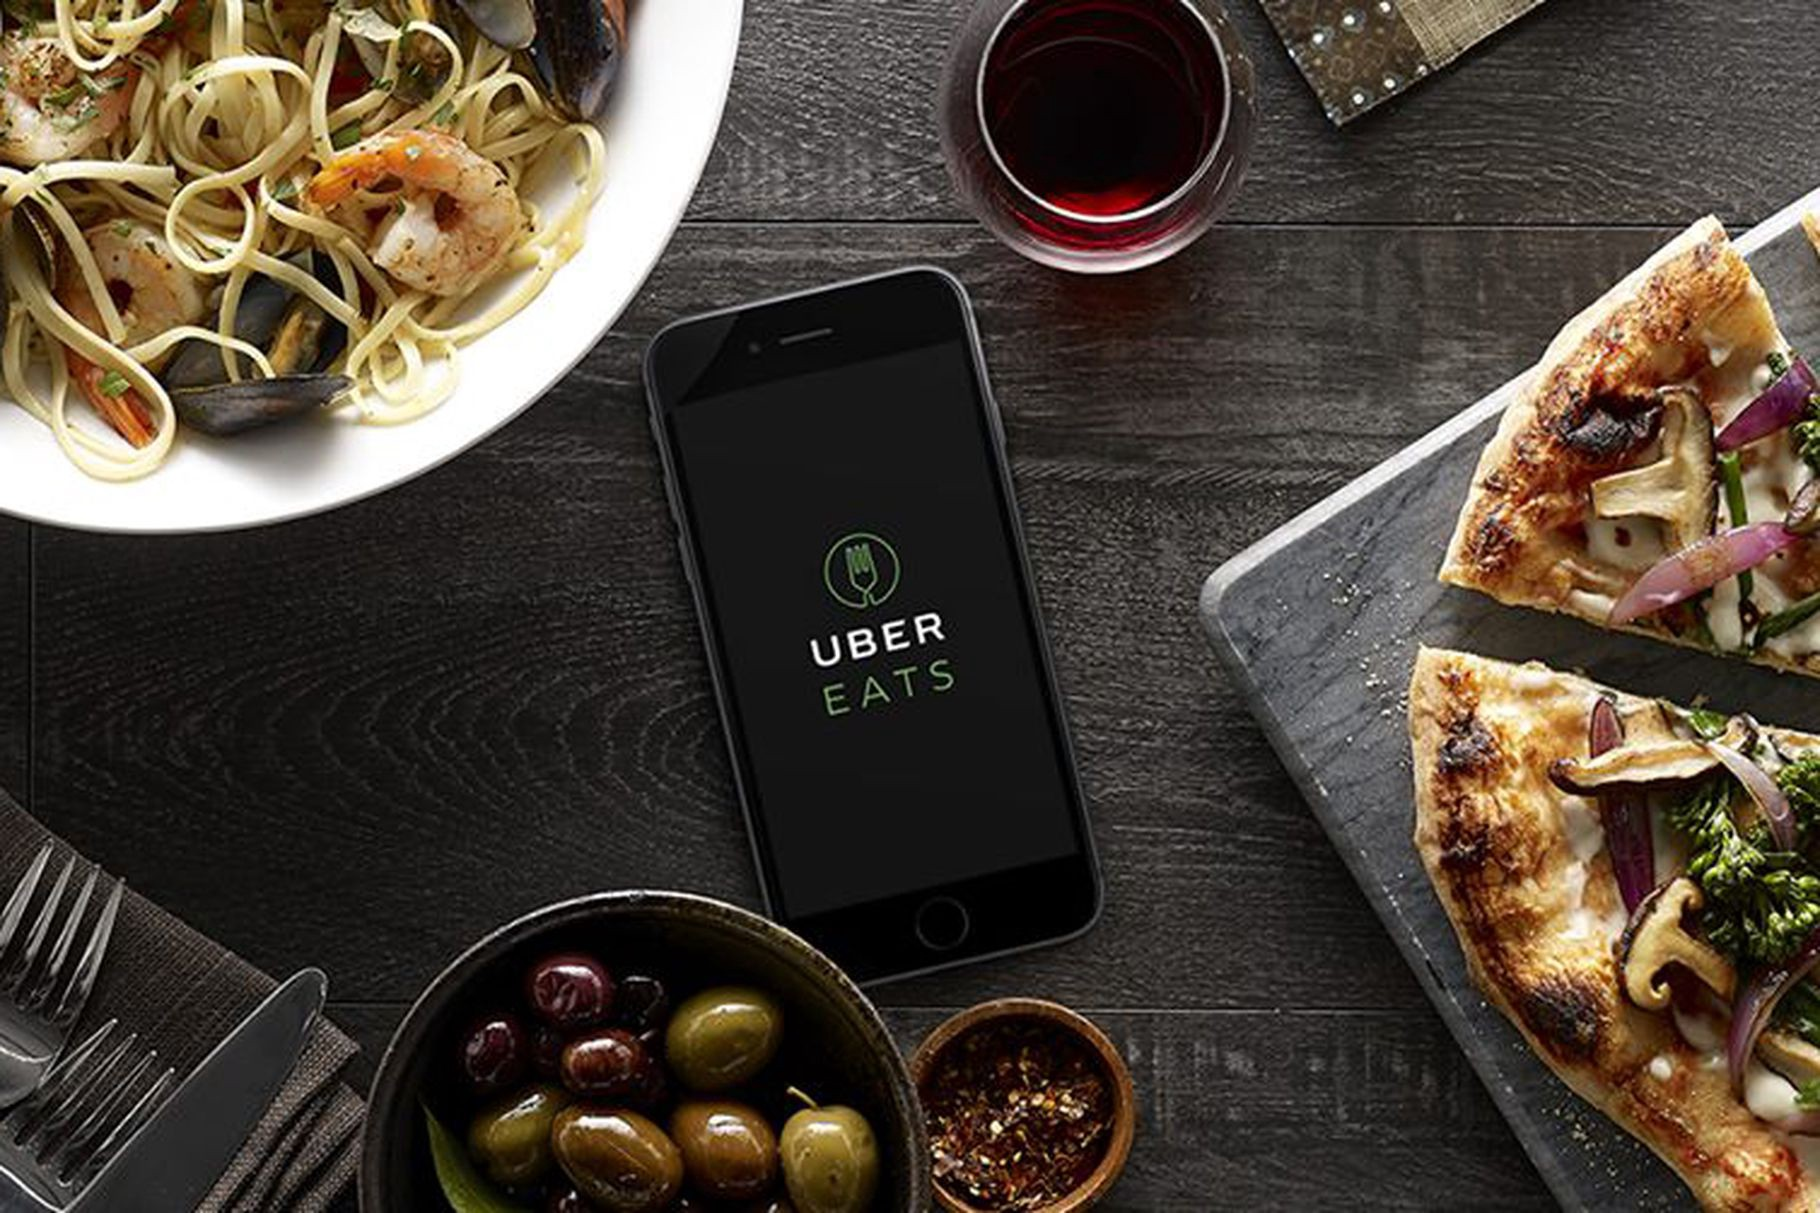 uber eats the mobile app enhancing the customer experience